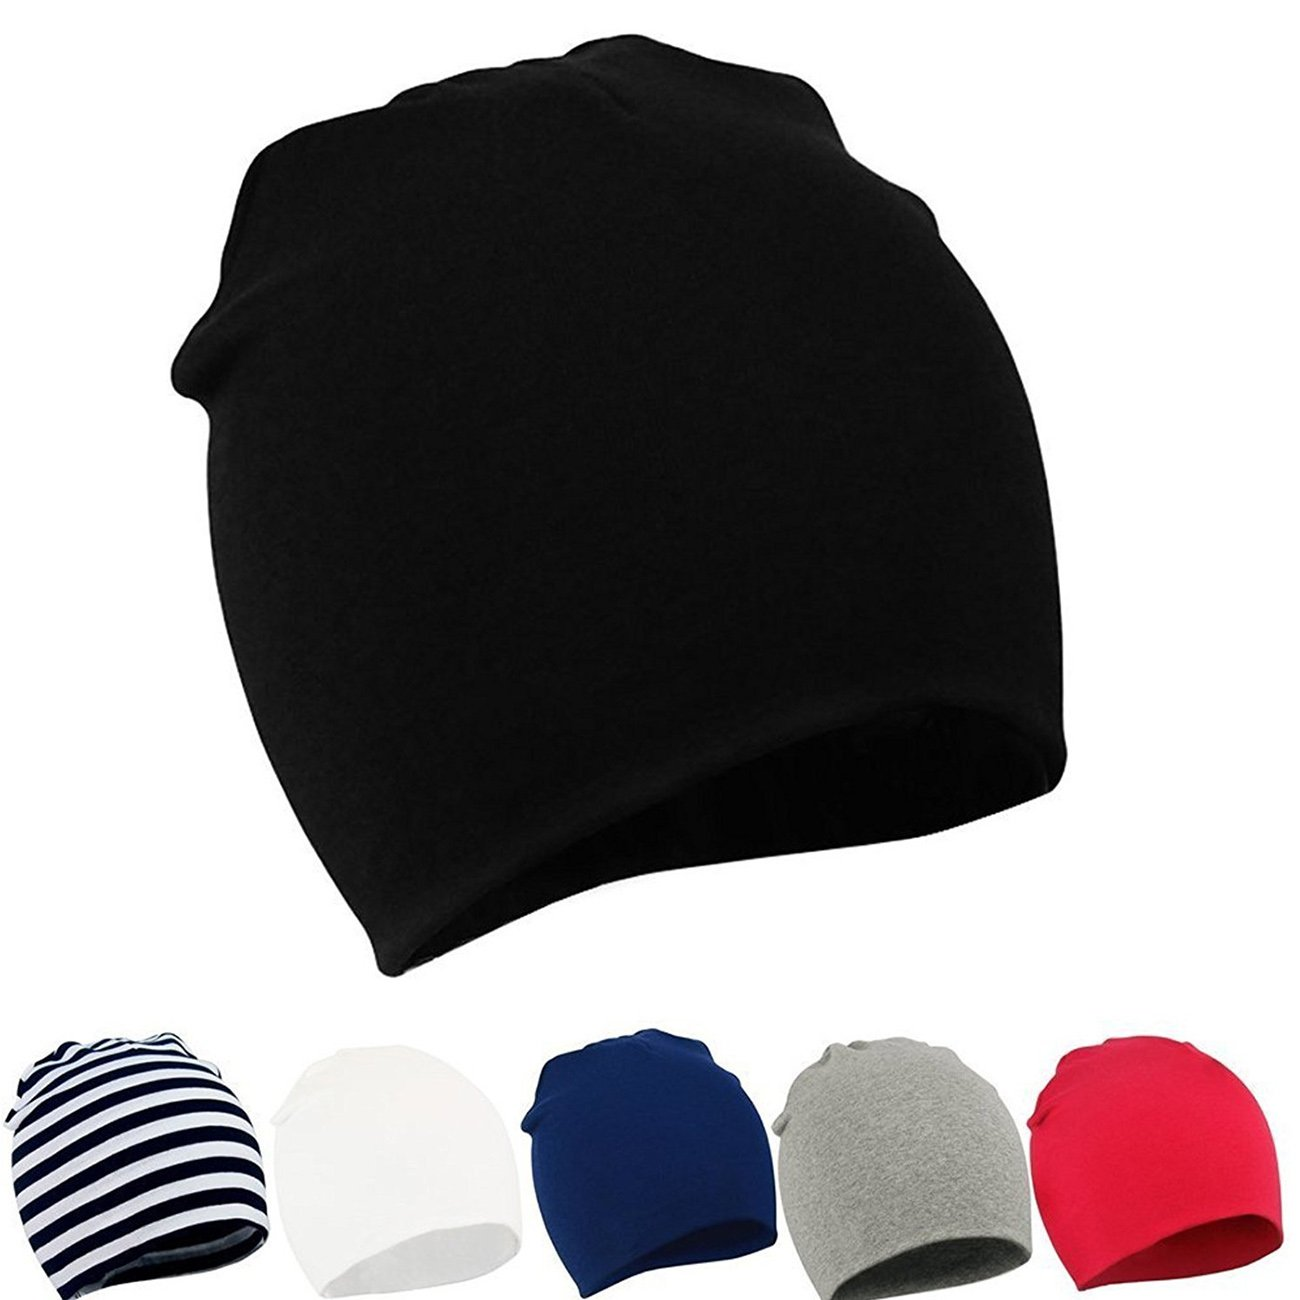 Zando Baby Toddler Infant Kids Cotton Soft Cute Lovely Knitted Beanies Hat Cap B 6 Pack-Mix Color2 Small (0-12 months)